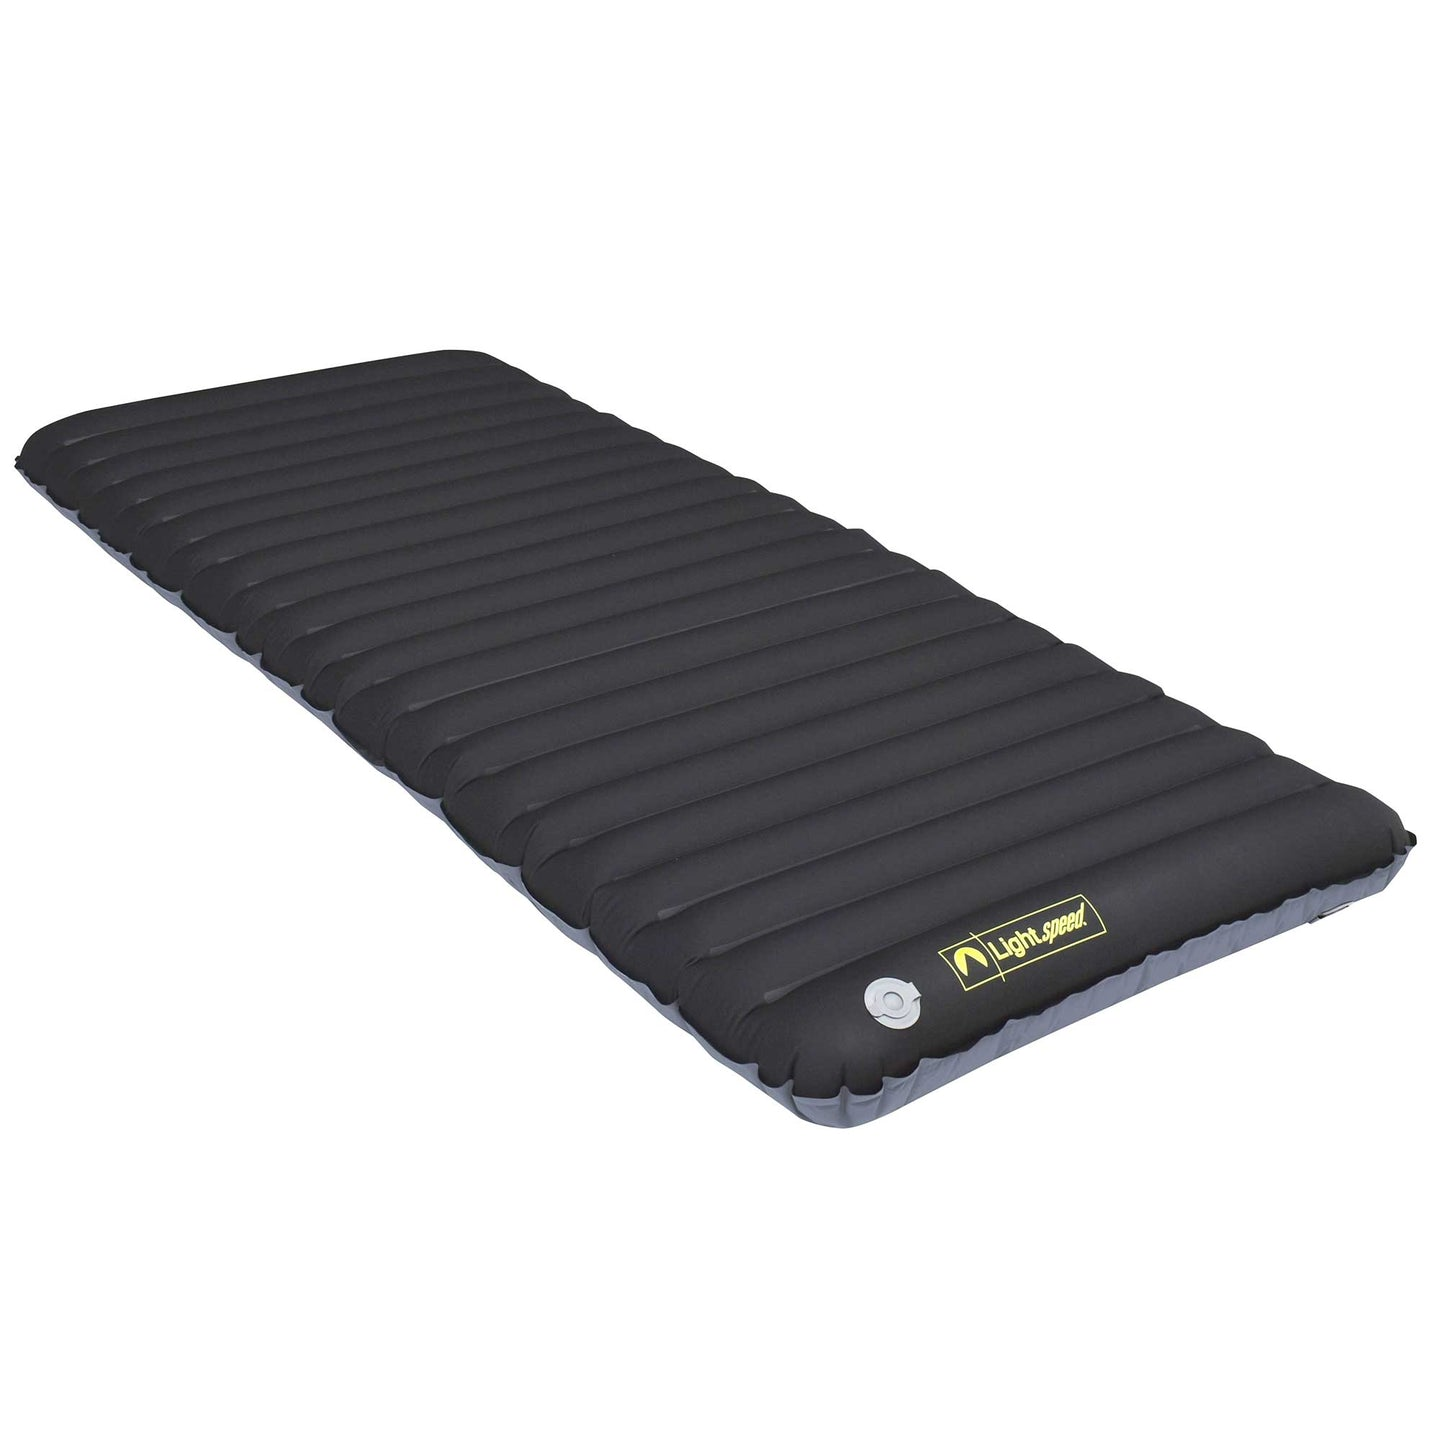 Angled view of Black Lightspeed outdoors Restaire Air Mat with soft Flexform material top.